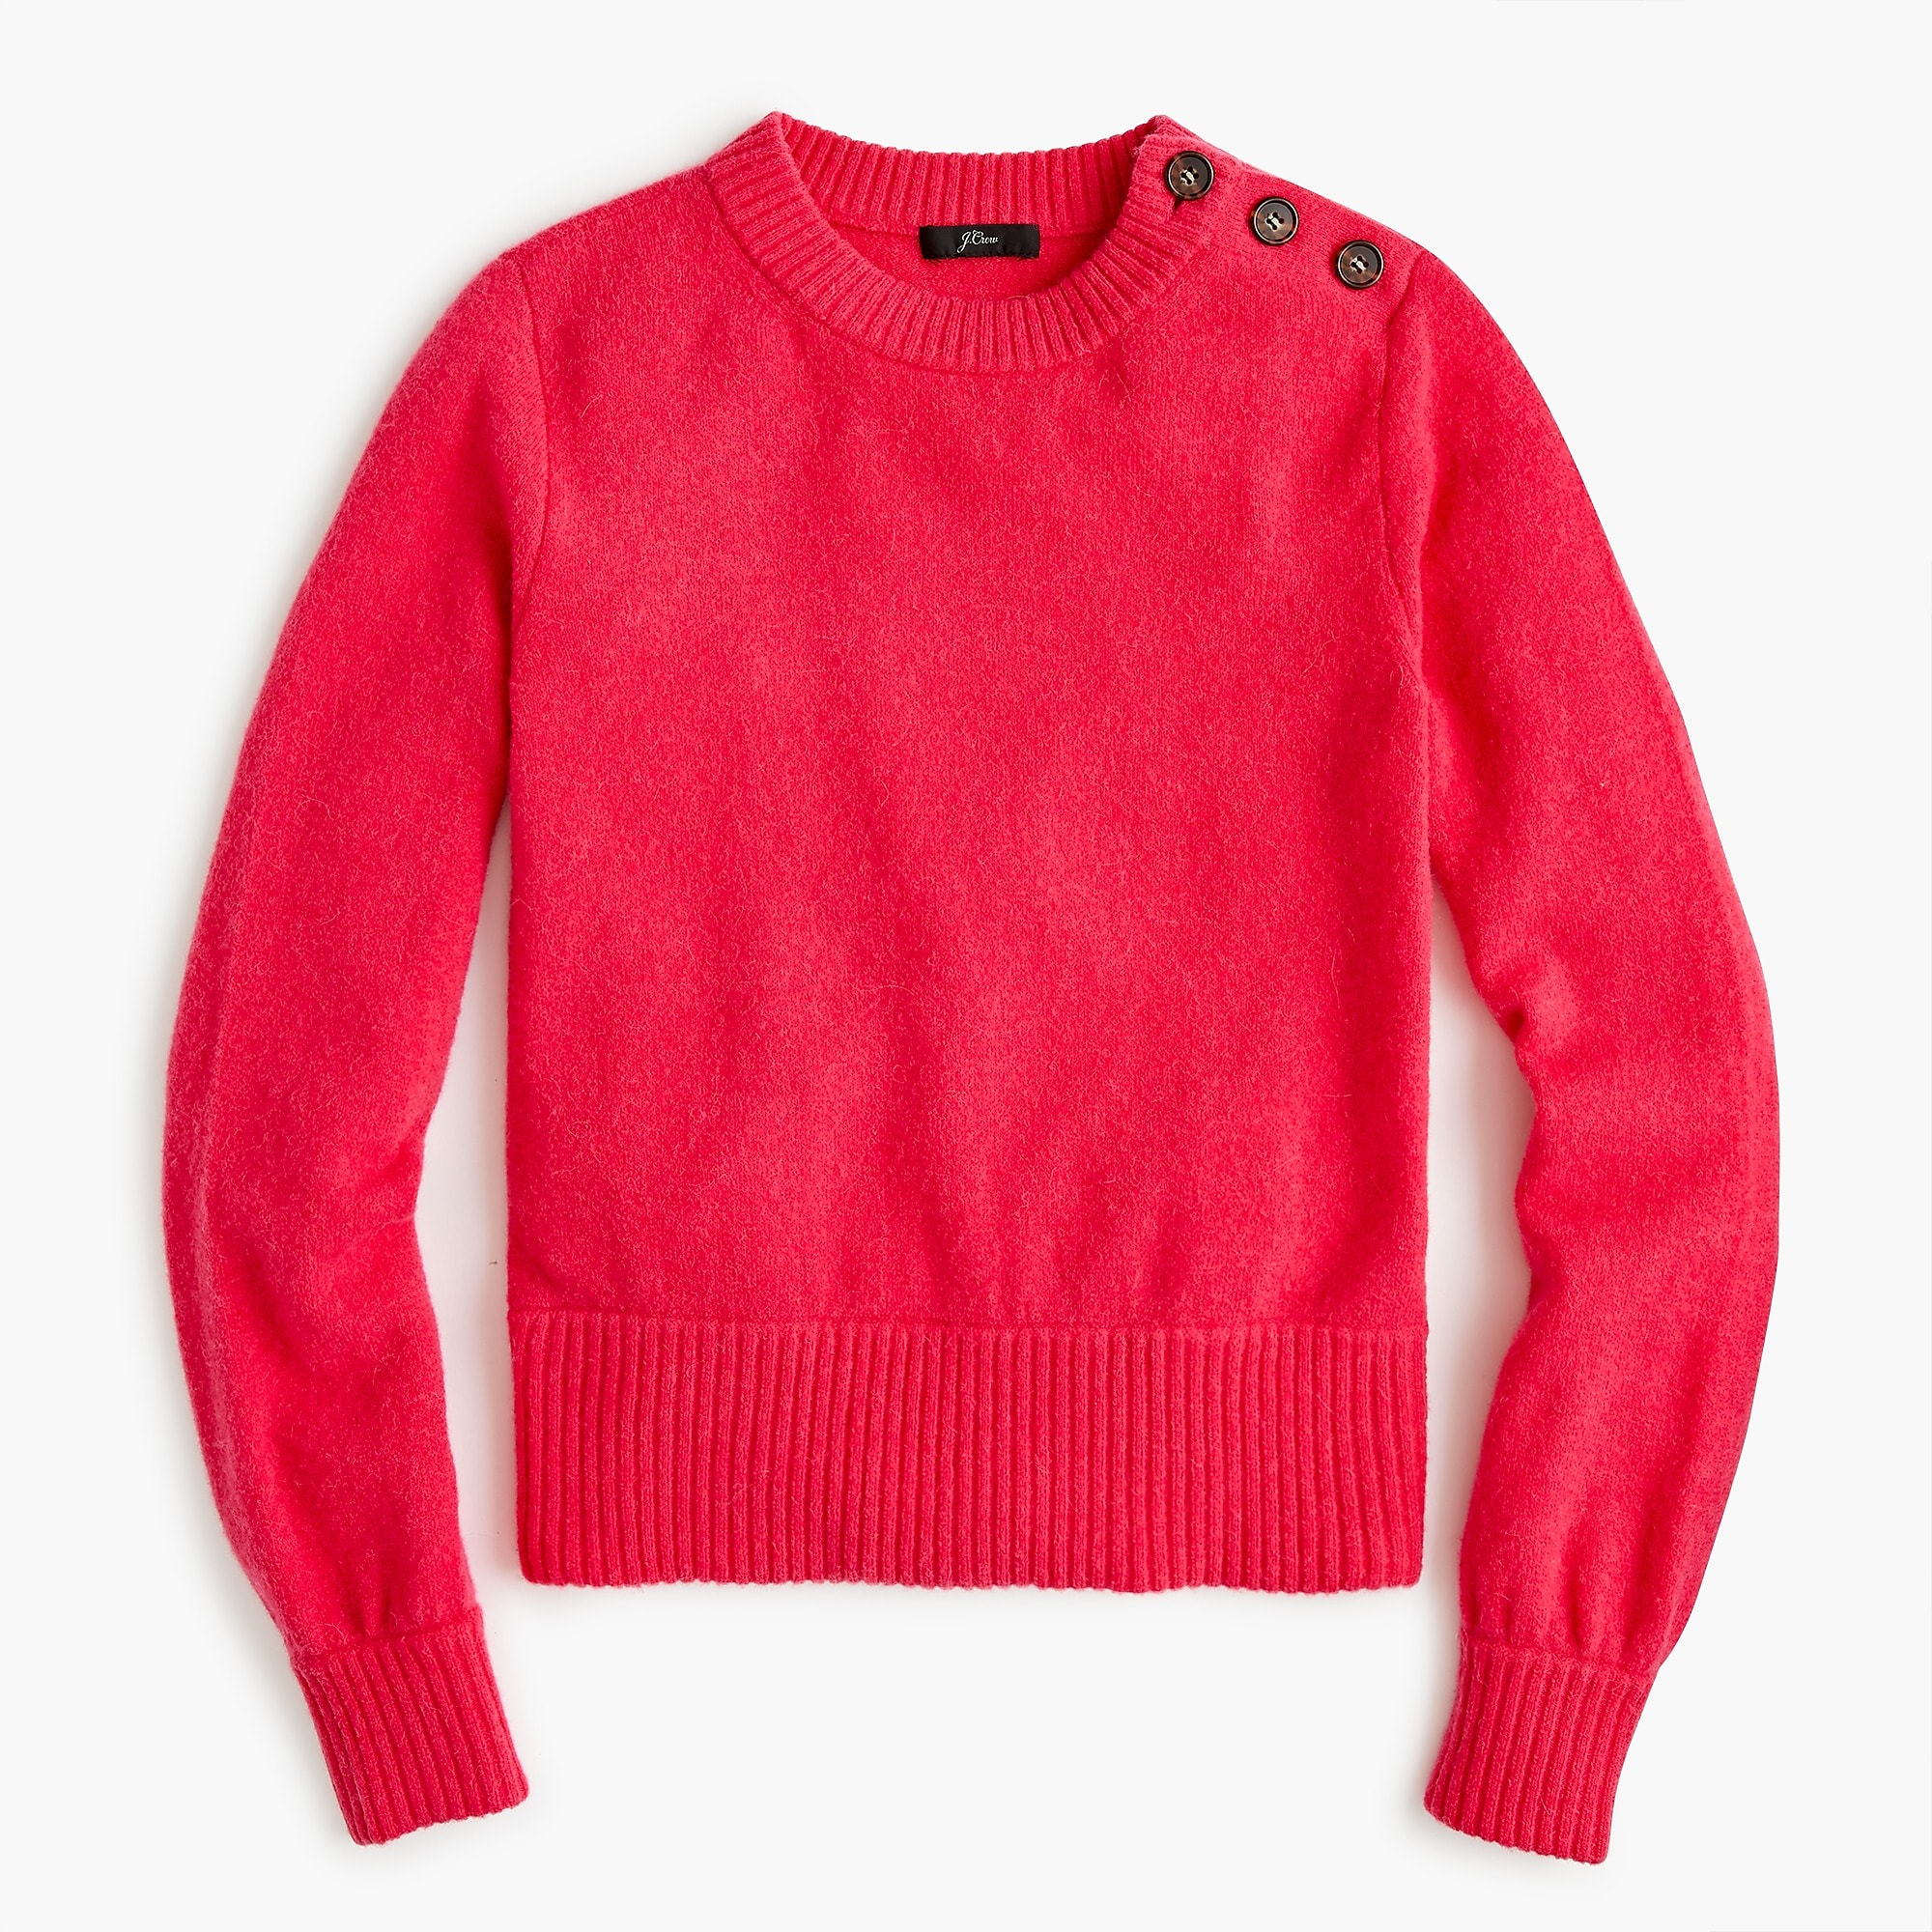 Button-detail crewneck sweater in supersoft yarn